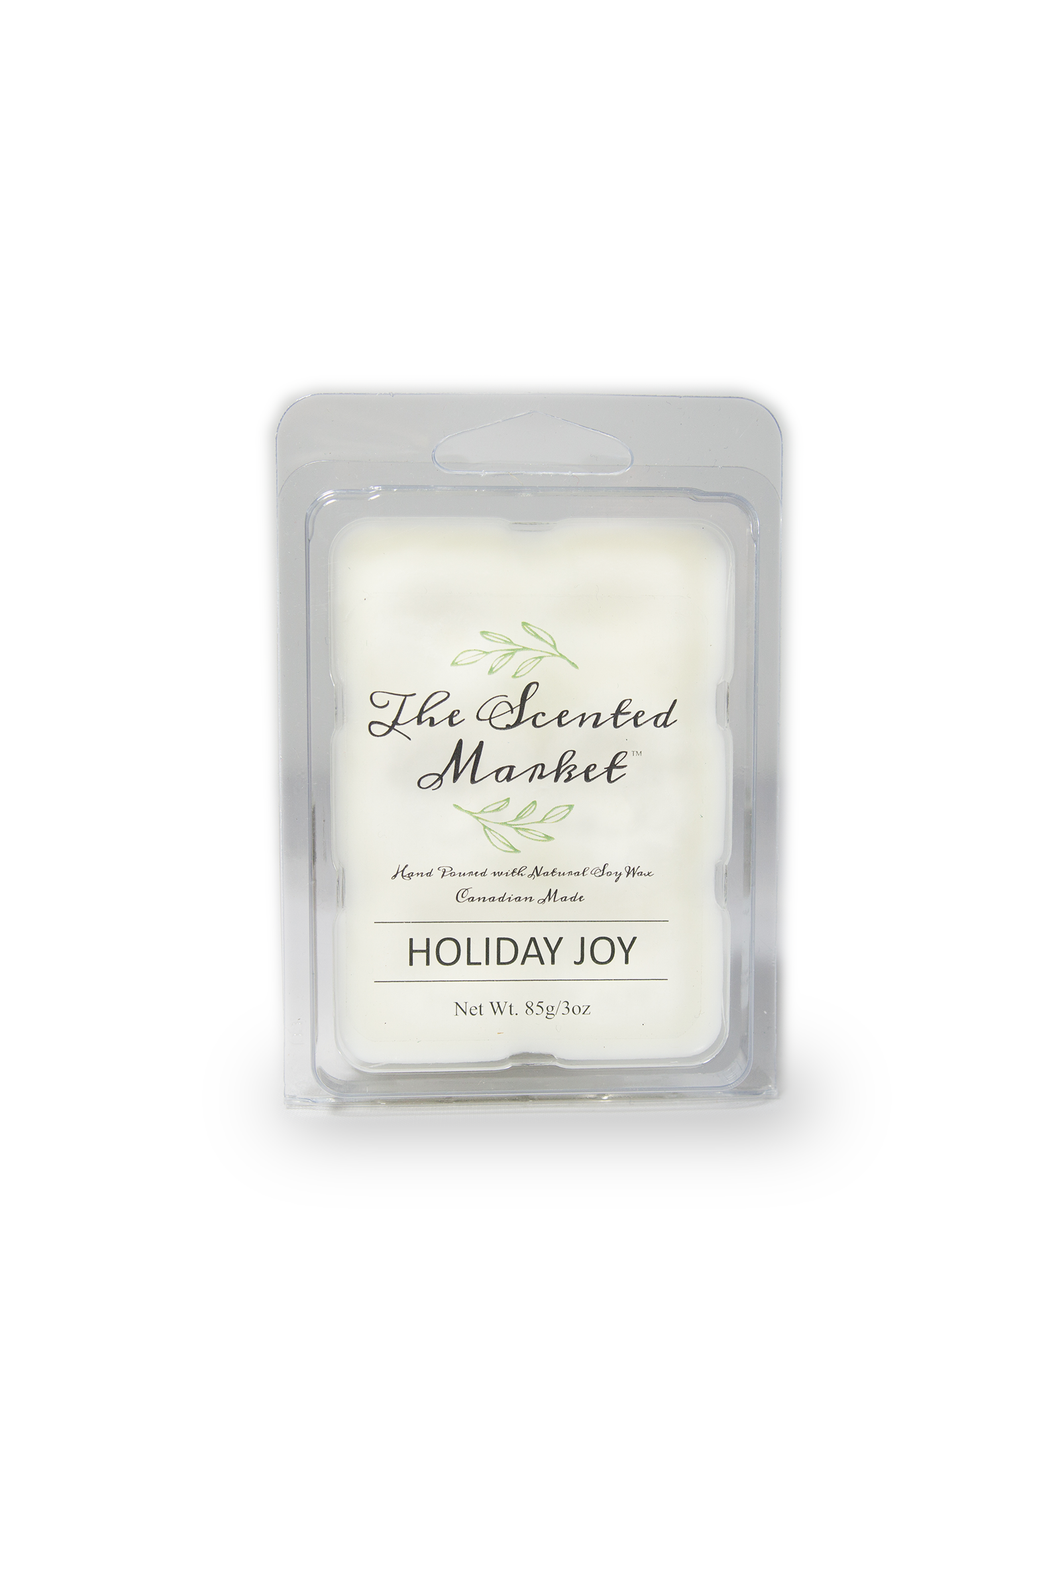 HOLIDAY JOY SOY WAX MELT